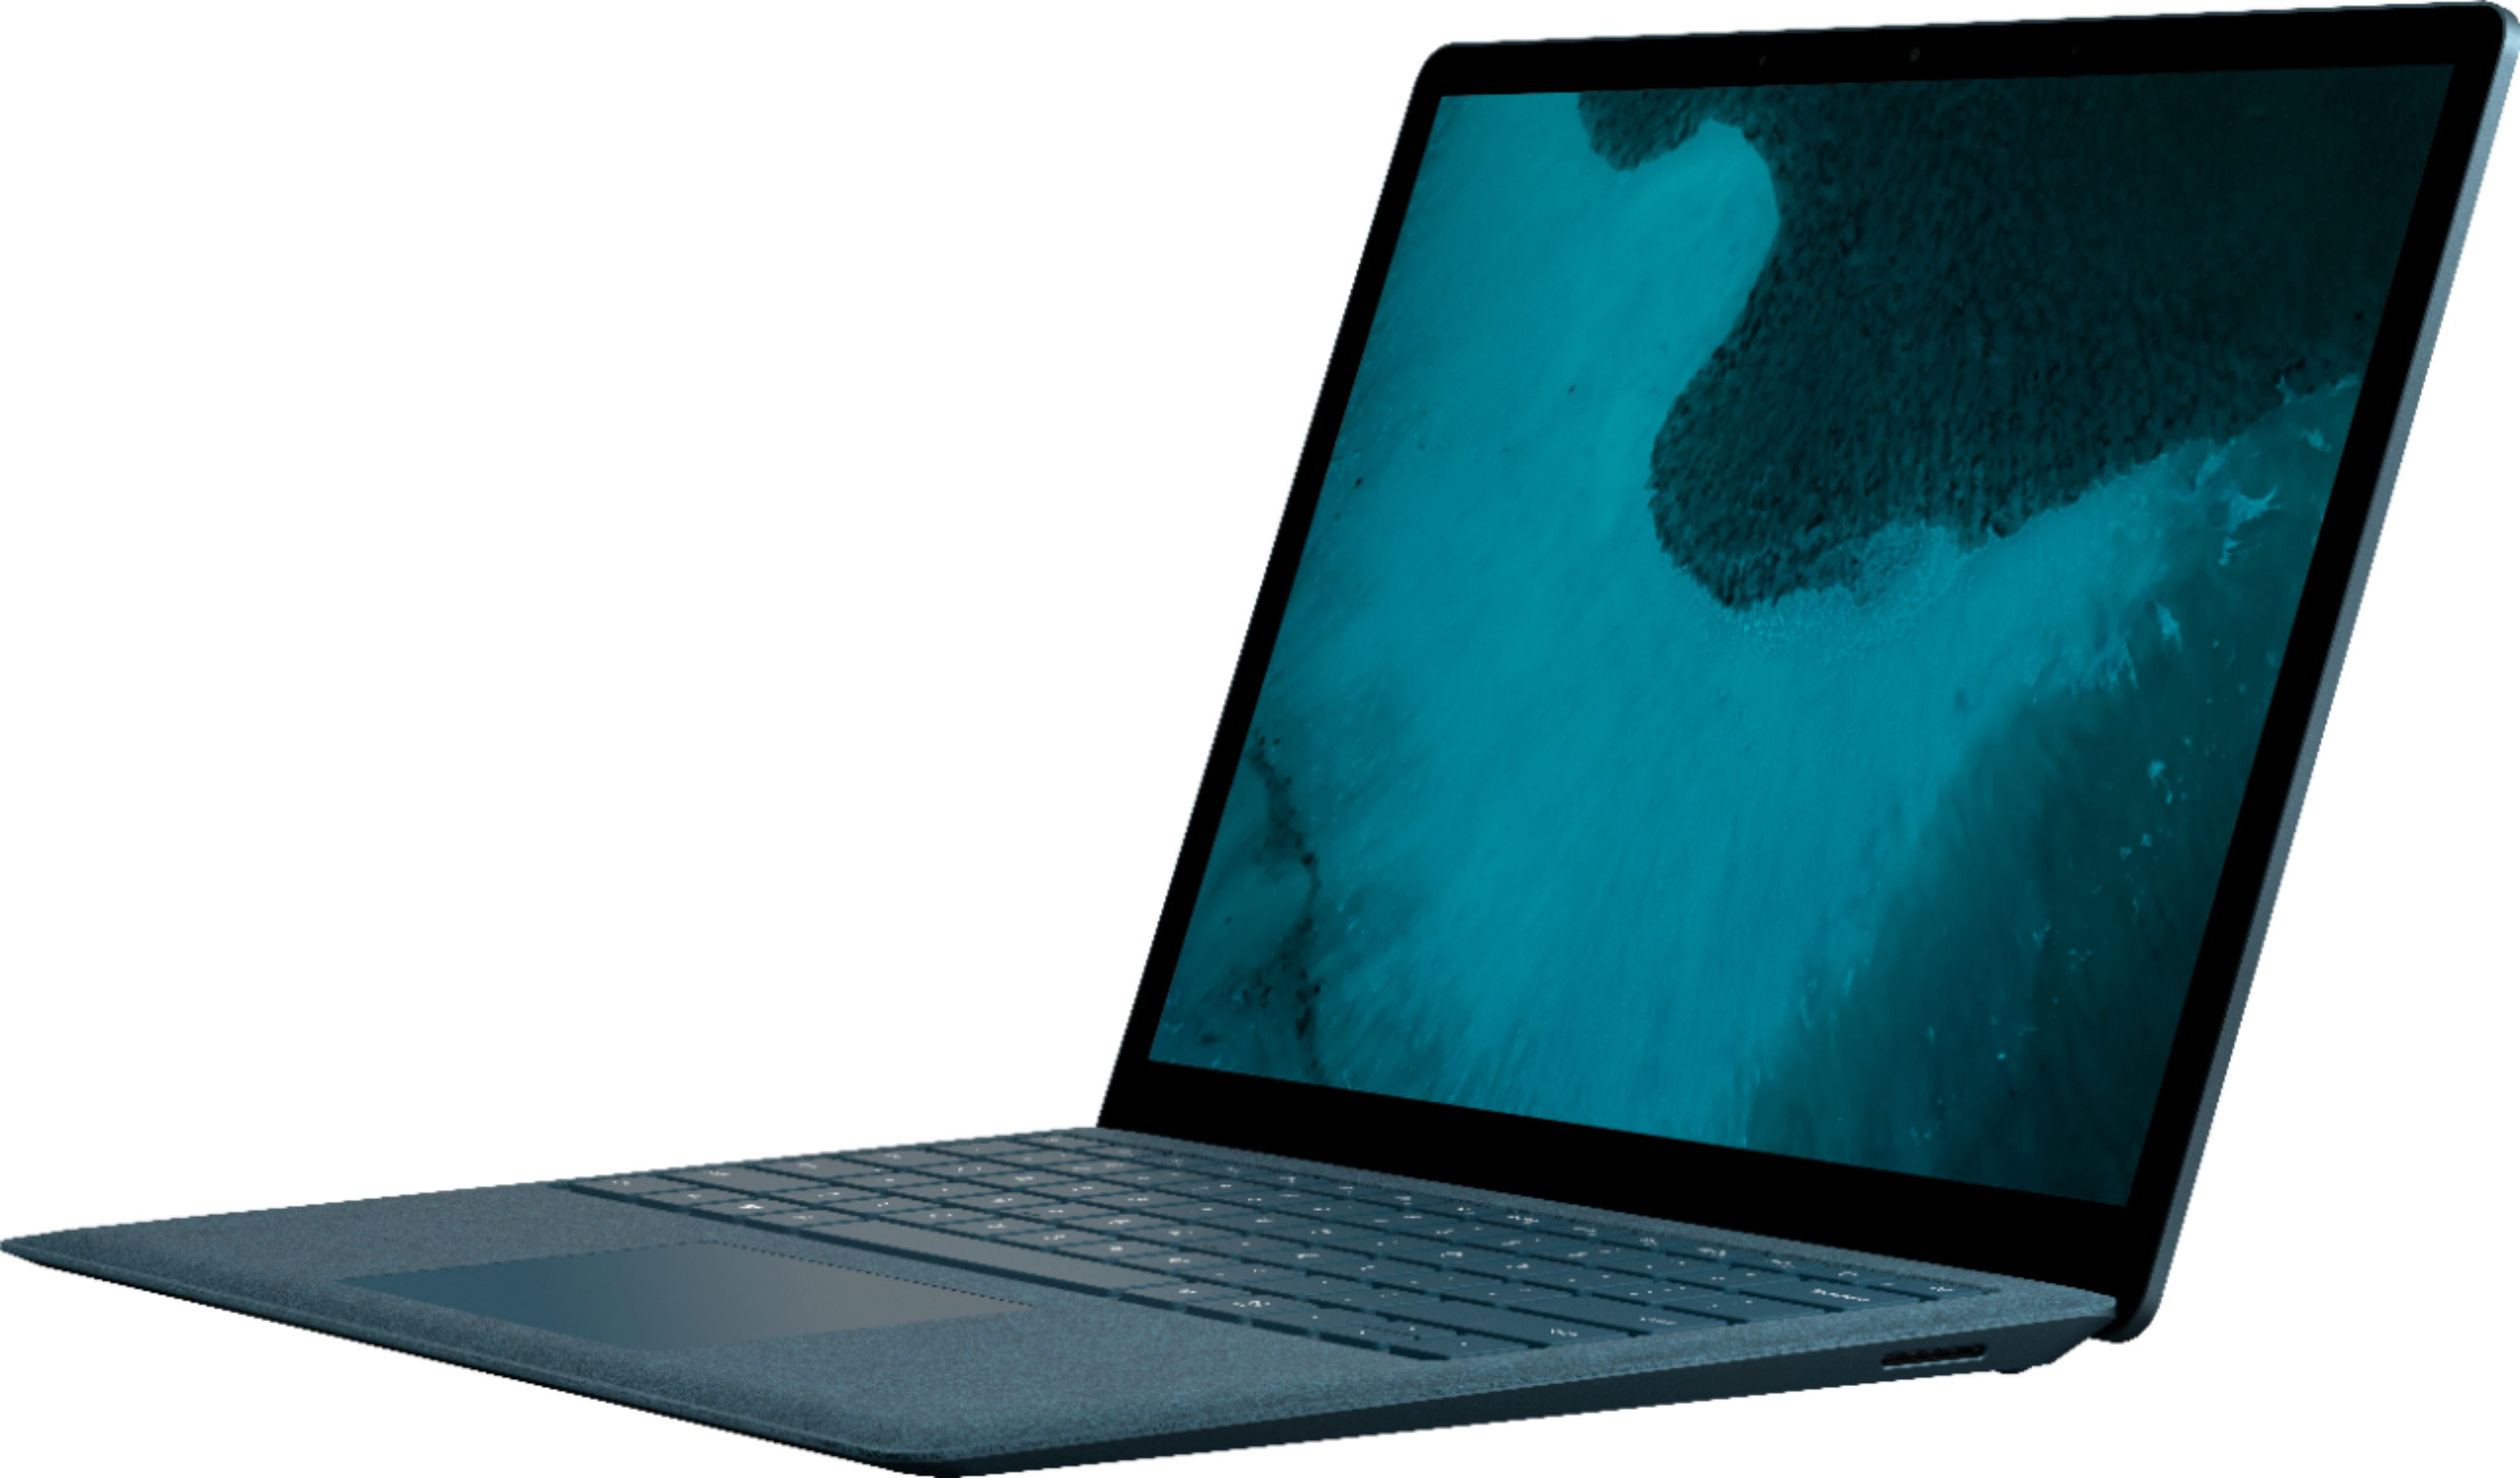 """Front Zoom. Microsoft - Geek Squad Certified Refurbished Surface Laptop 2 - 13.5"""" Touch Screen - Intel Core i5 - 8GB - 256GB SSD - Cobalt Blue."""